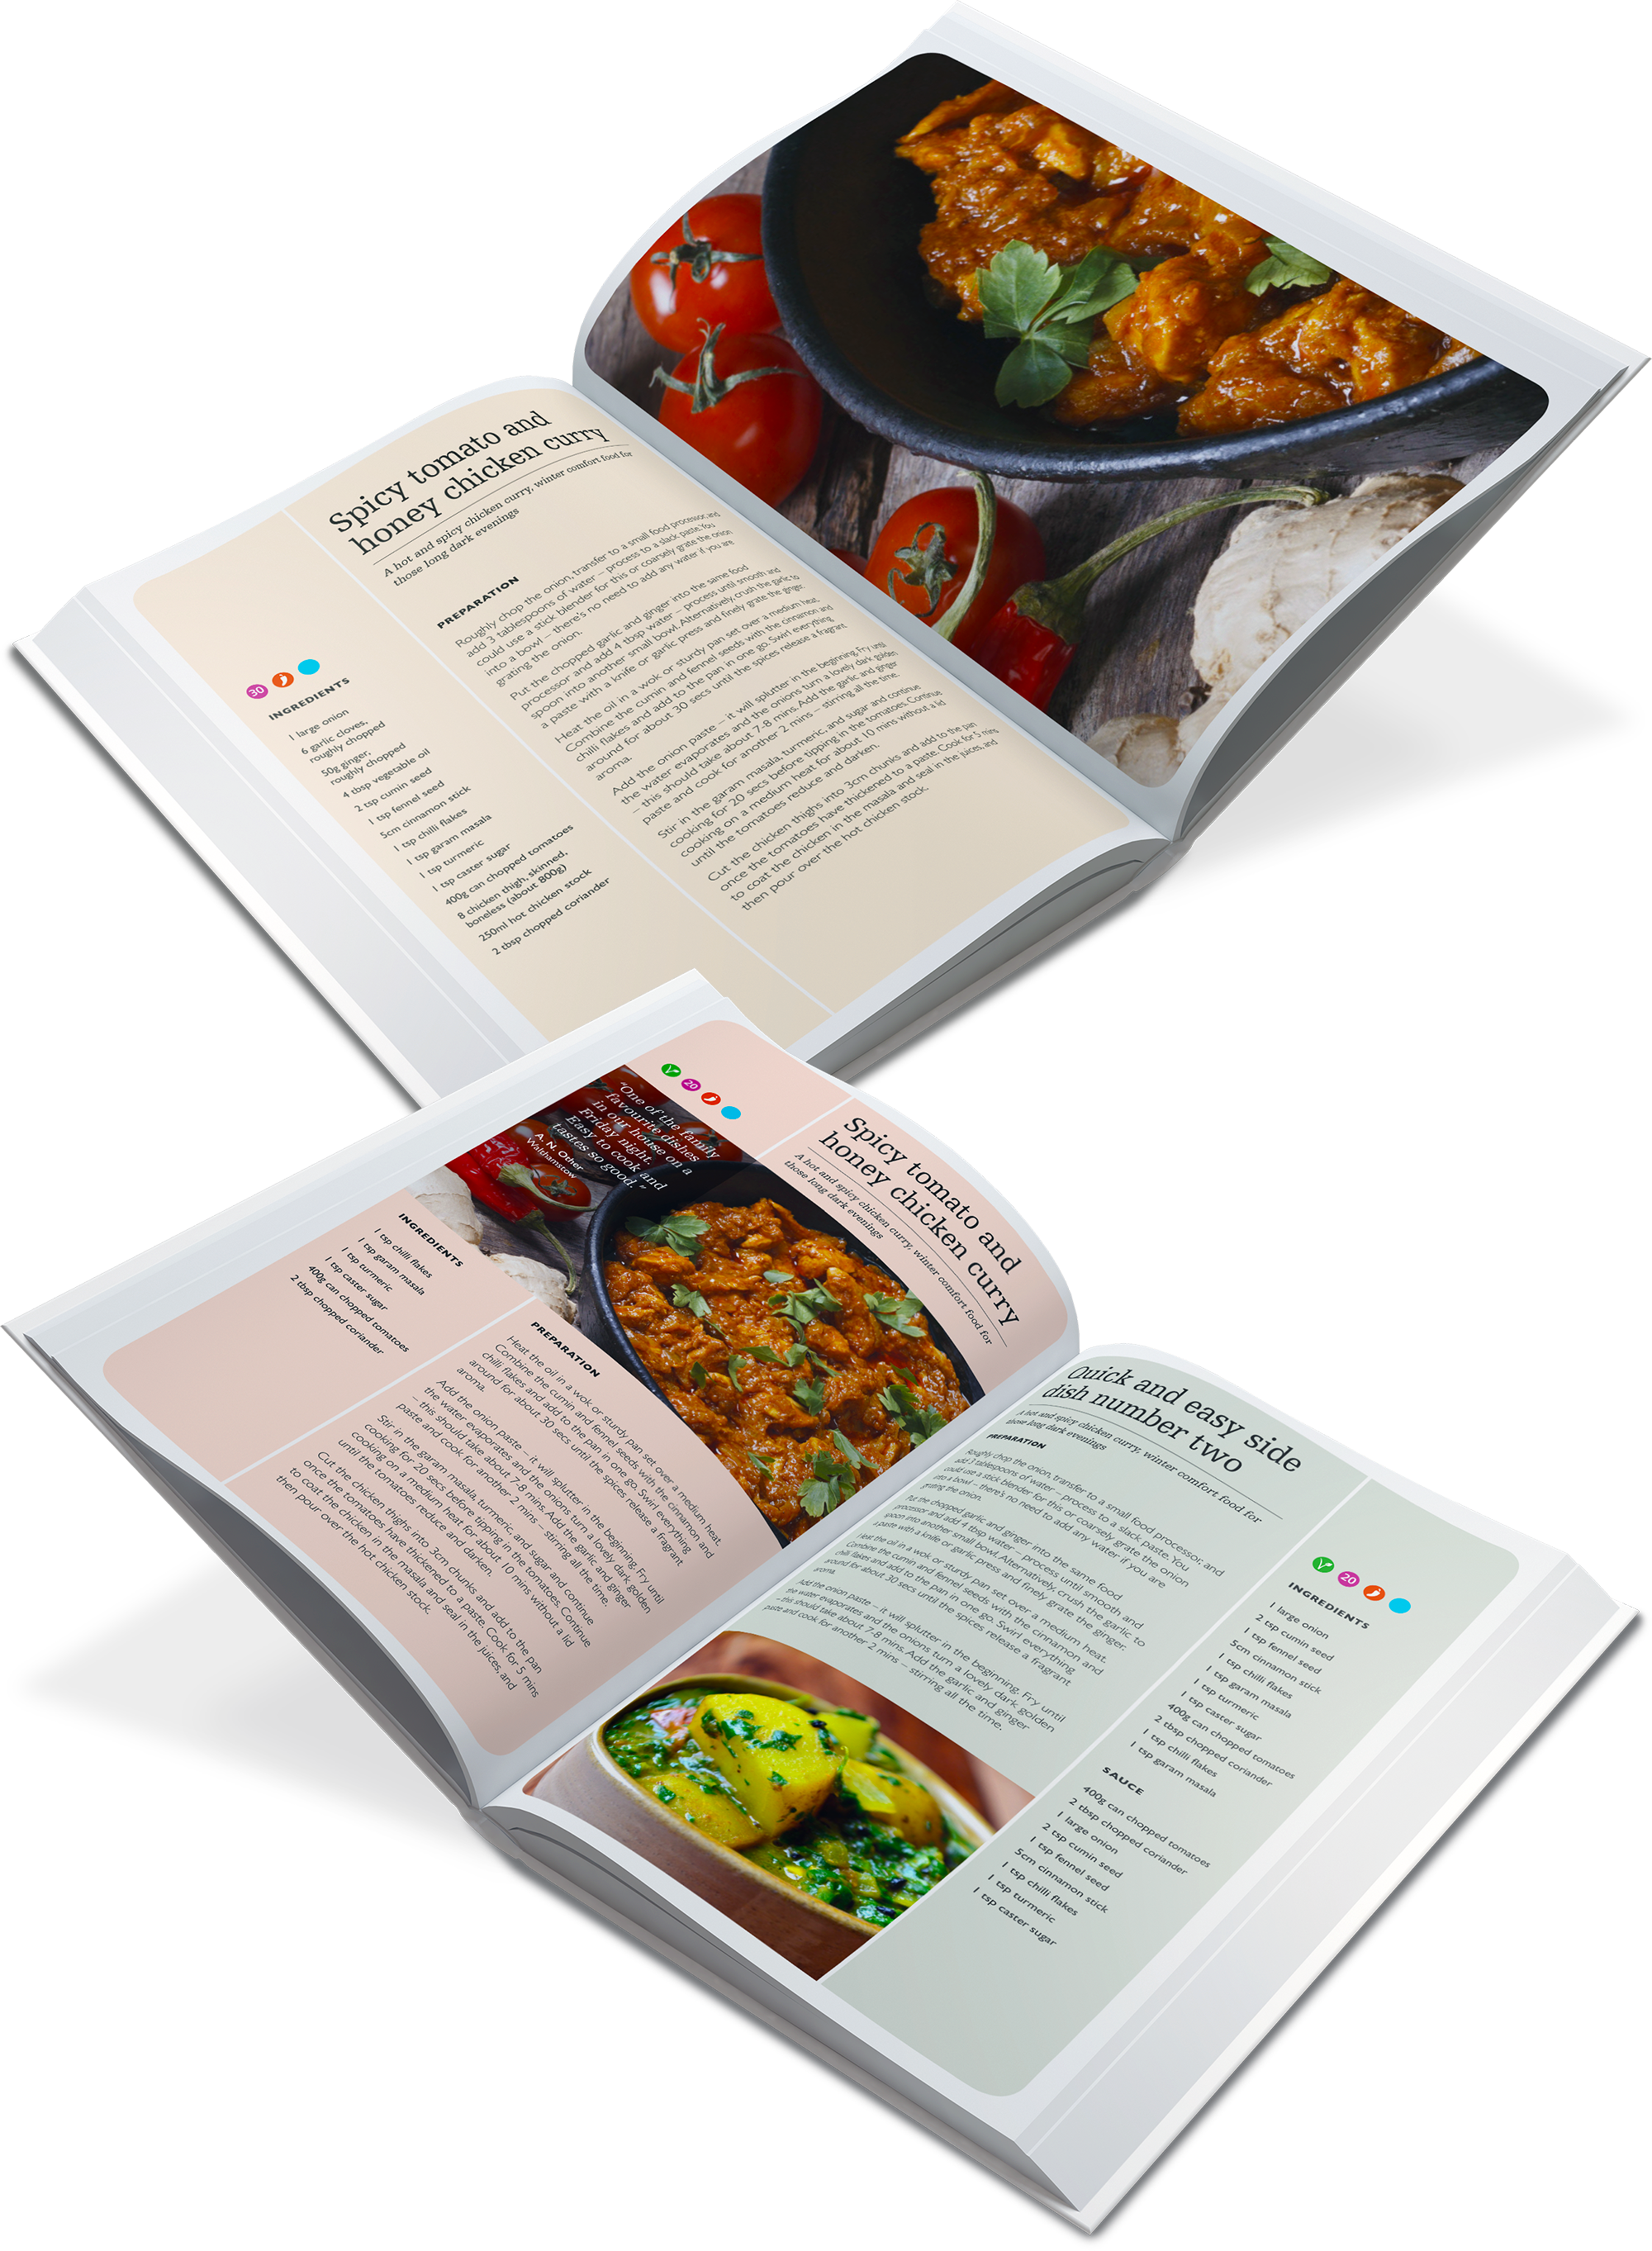 Recipe book produced by local comunity suppliers and residents